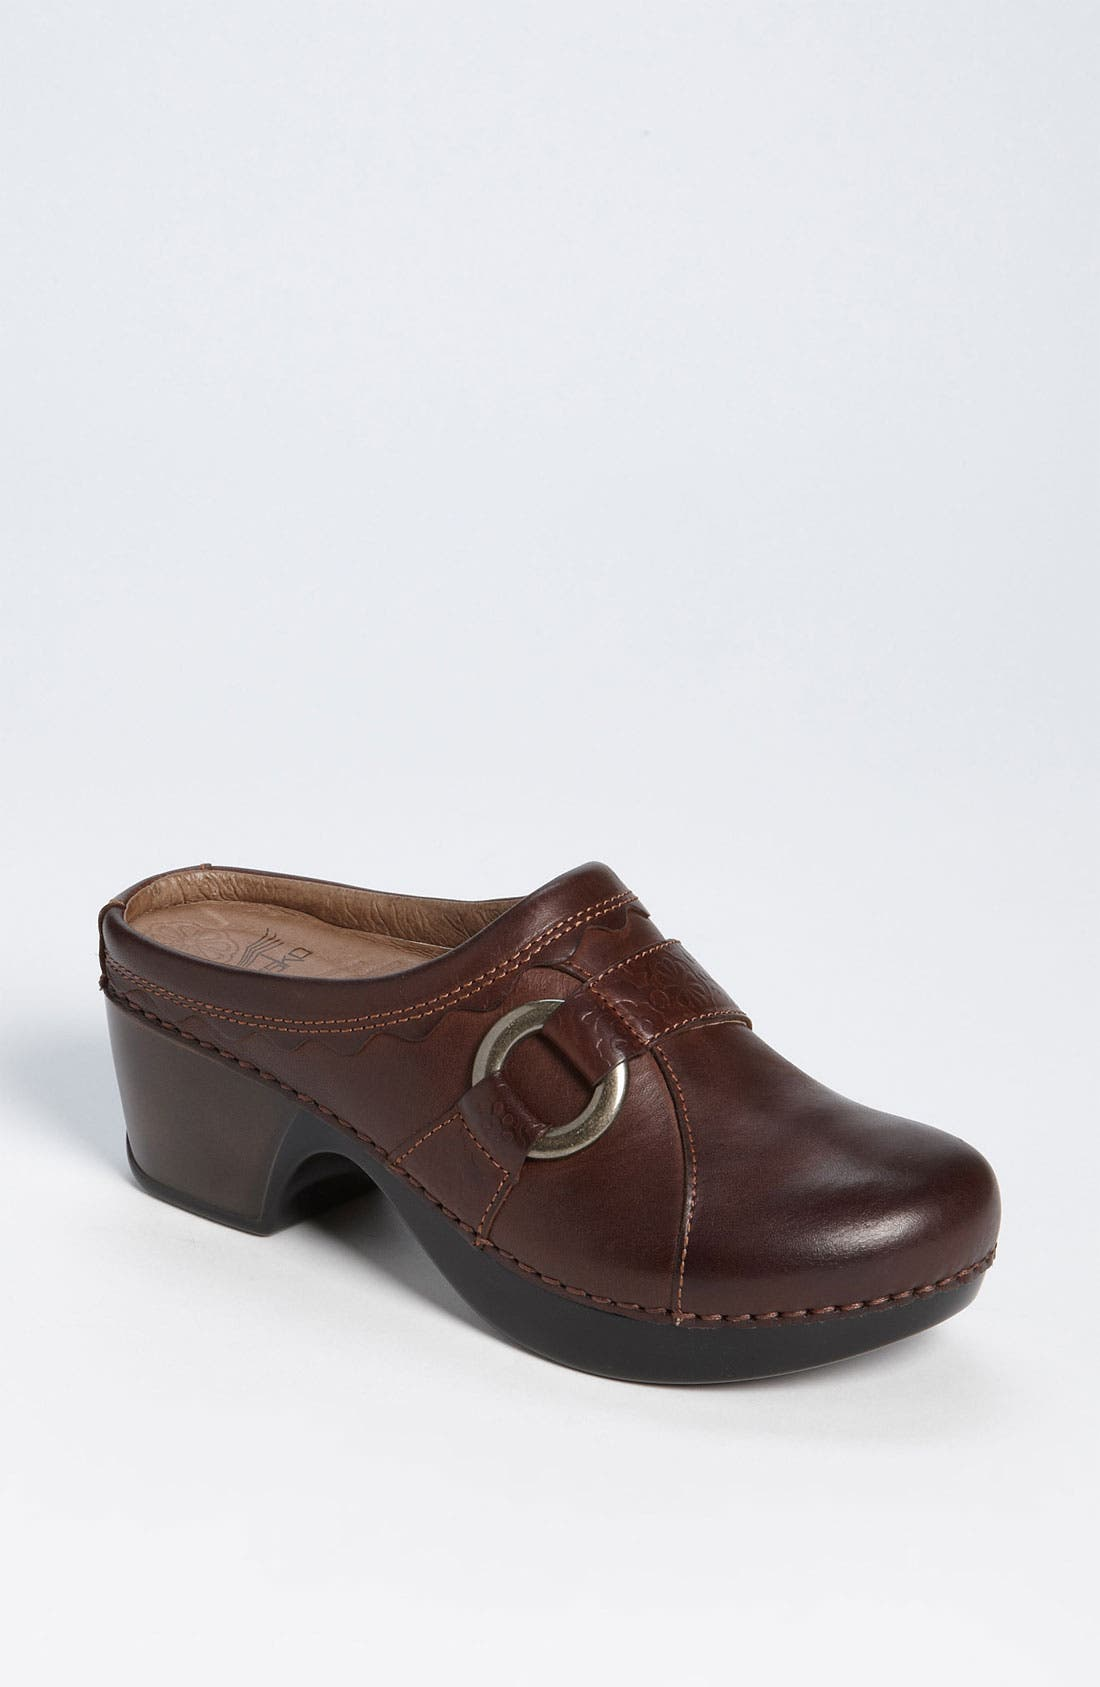 Alternate Image 1 Selected - Dansko 'Hattie' Clog